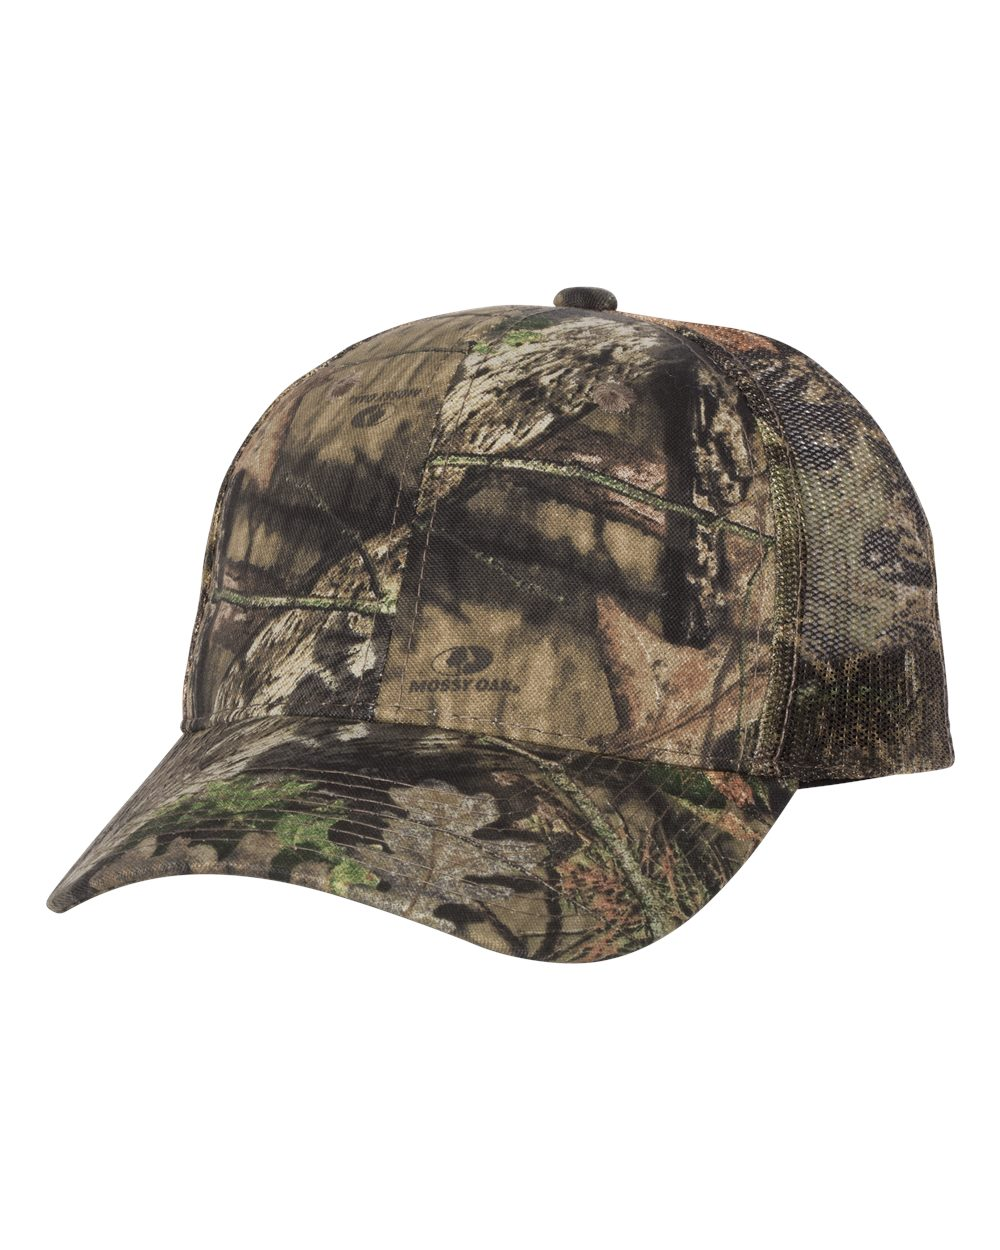 click to view Mossy Oak Country